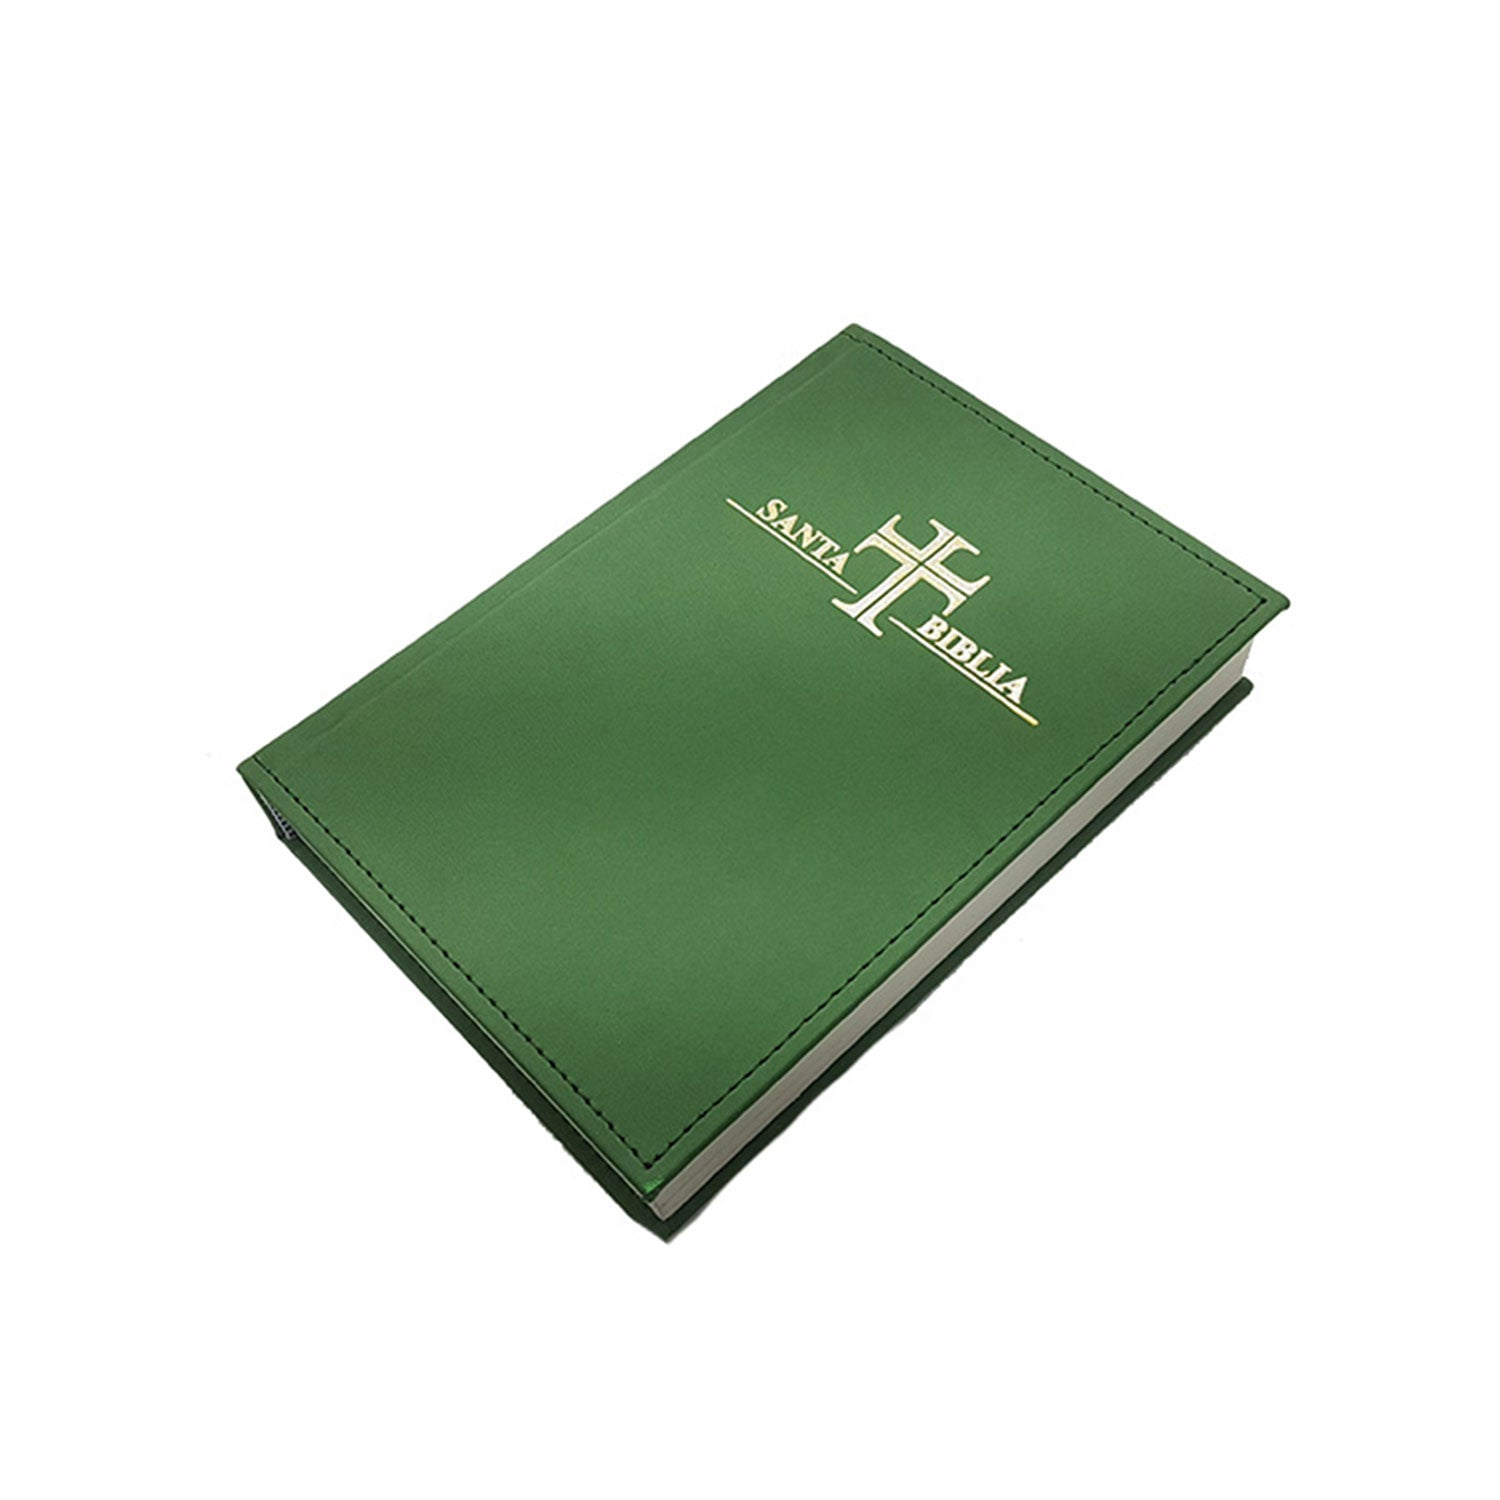 Biblia de Seguridad Top Secret Safe-Verde